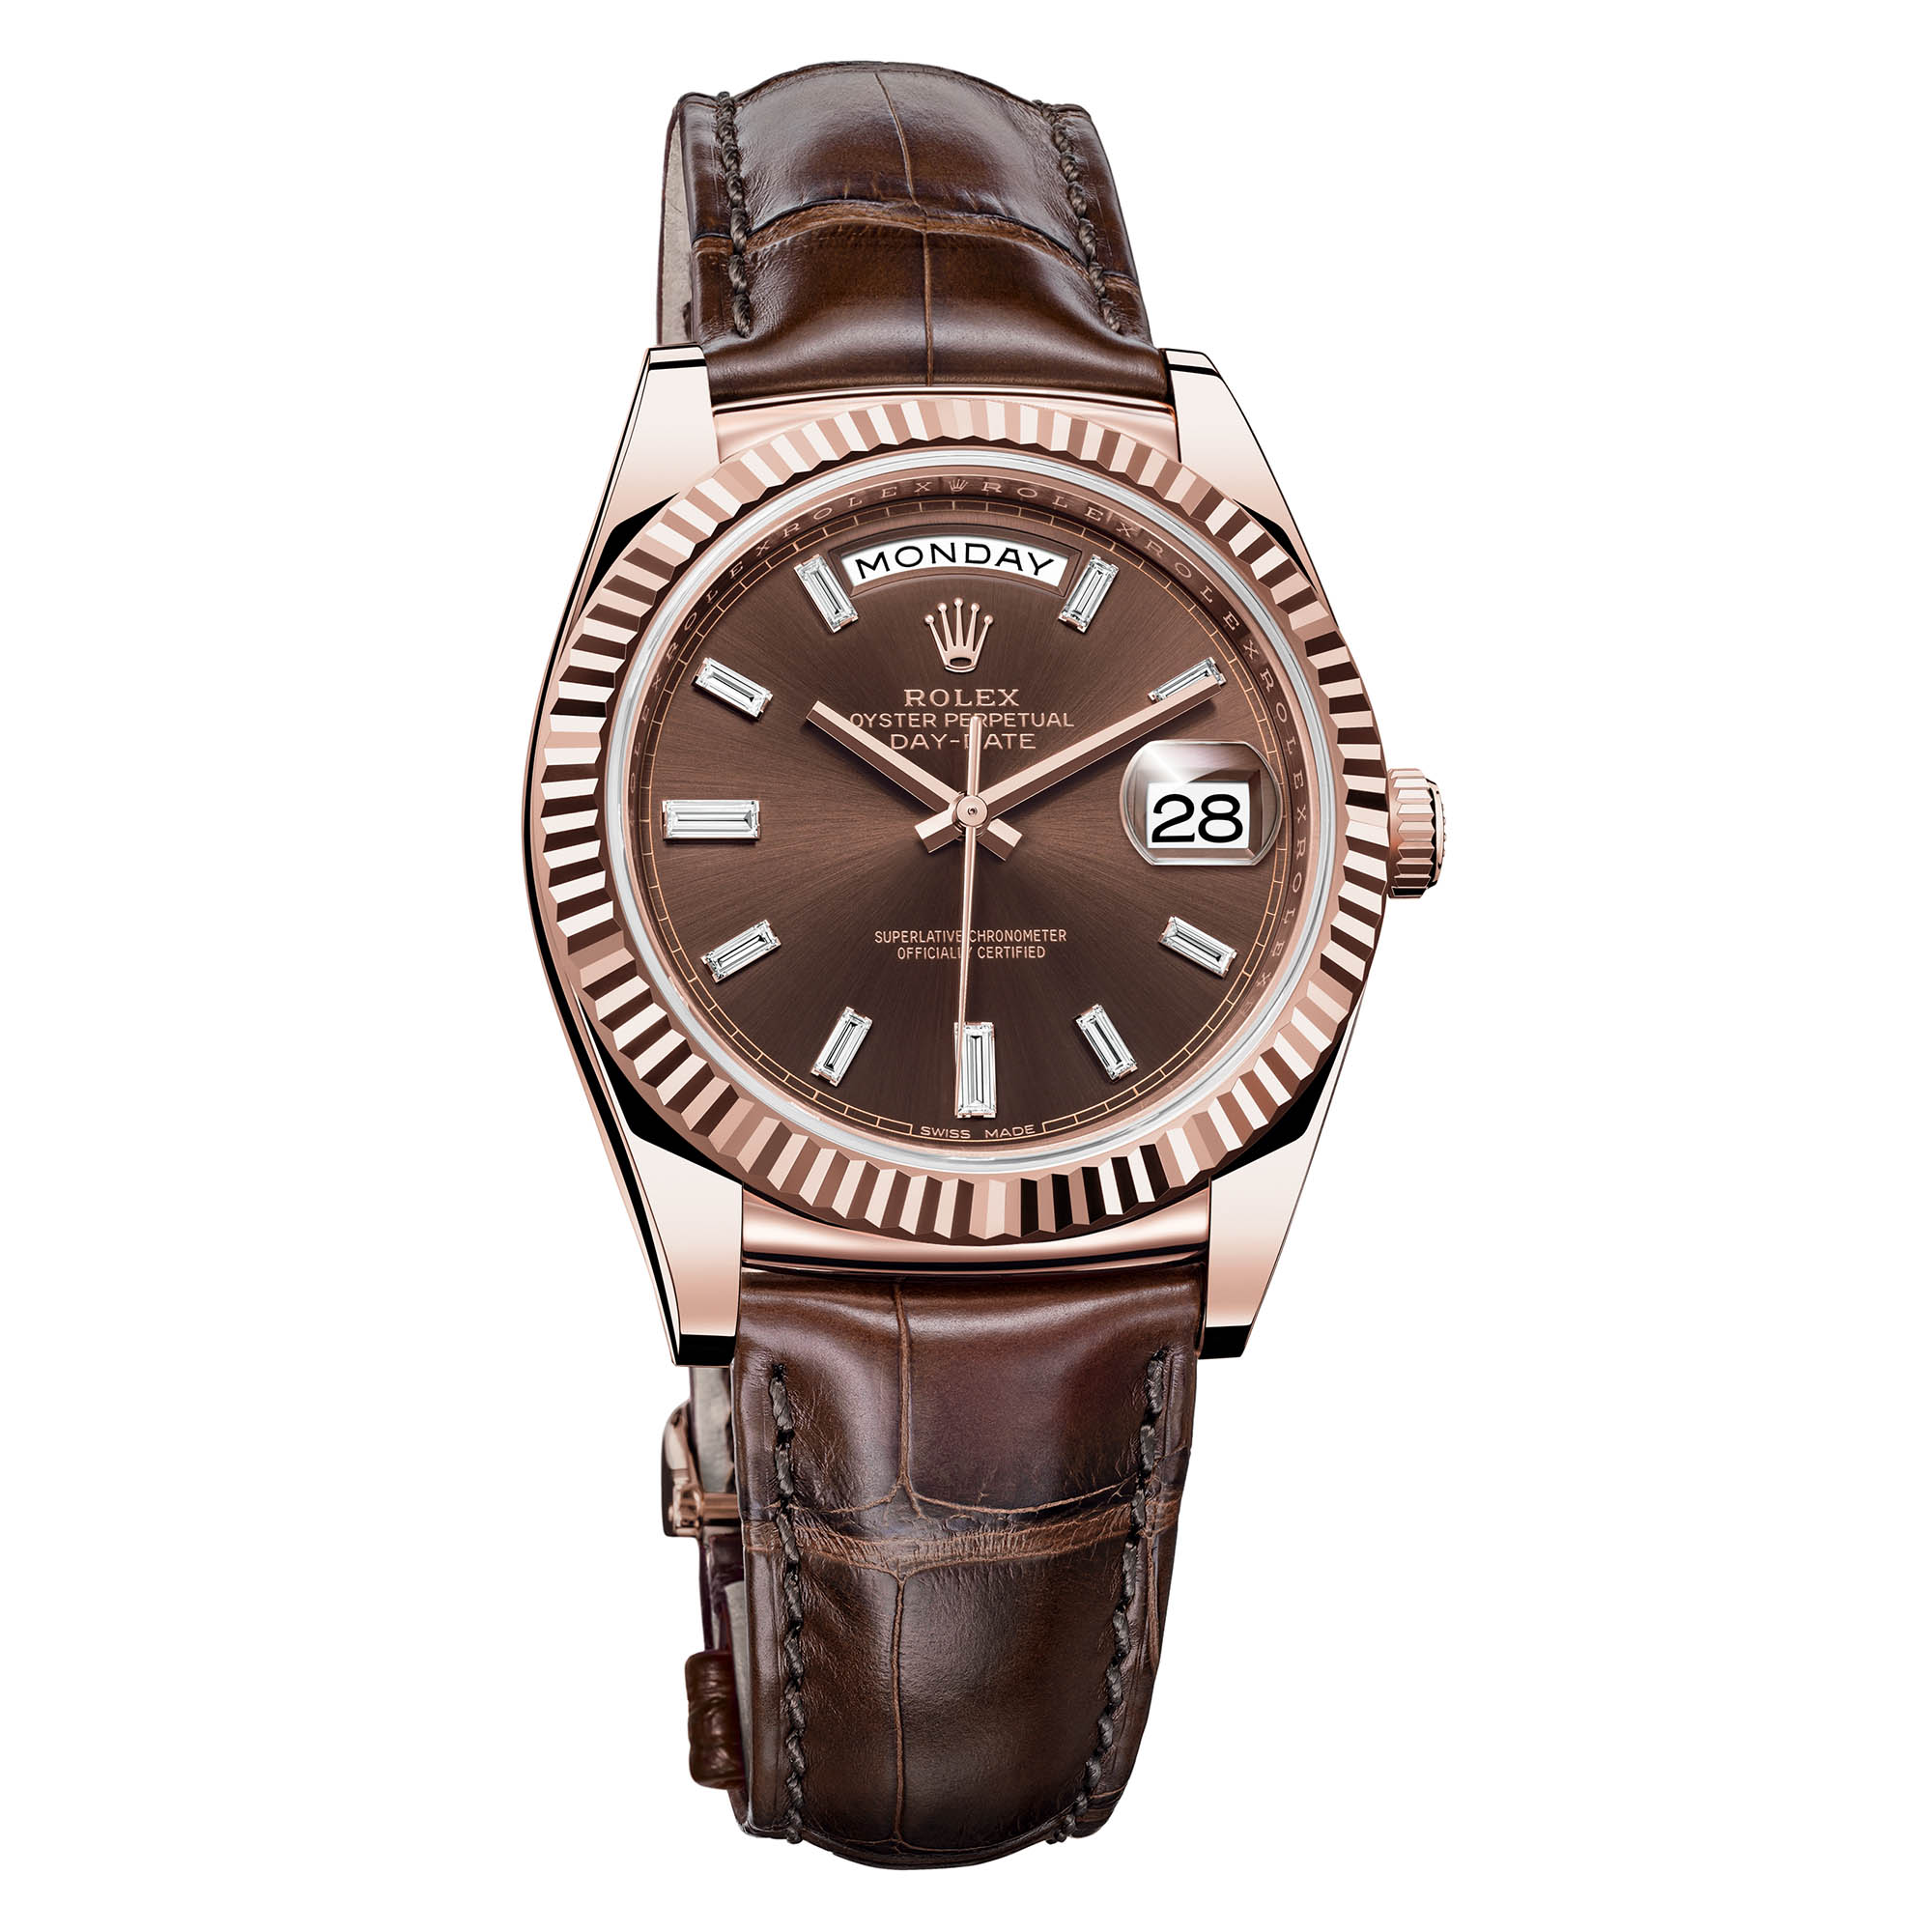 Rolex Day-Date 36 Everose Gold Leather Calibre 3255 - Rolex Baselworld 2018 - Rolex Predictions 2018